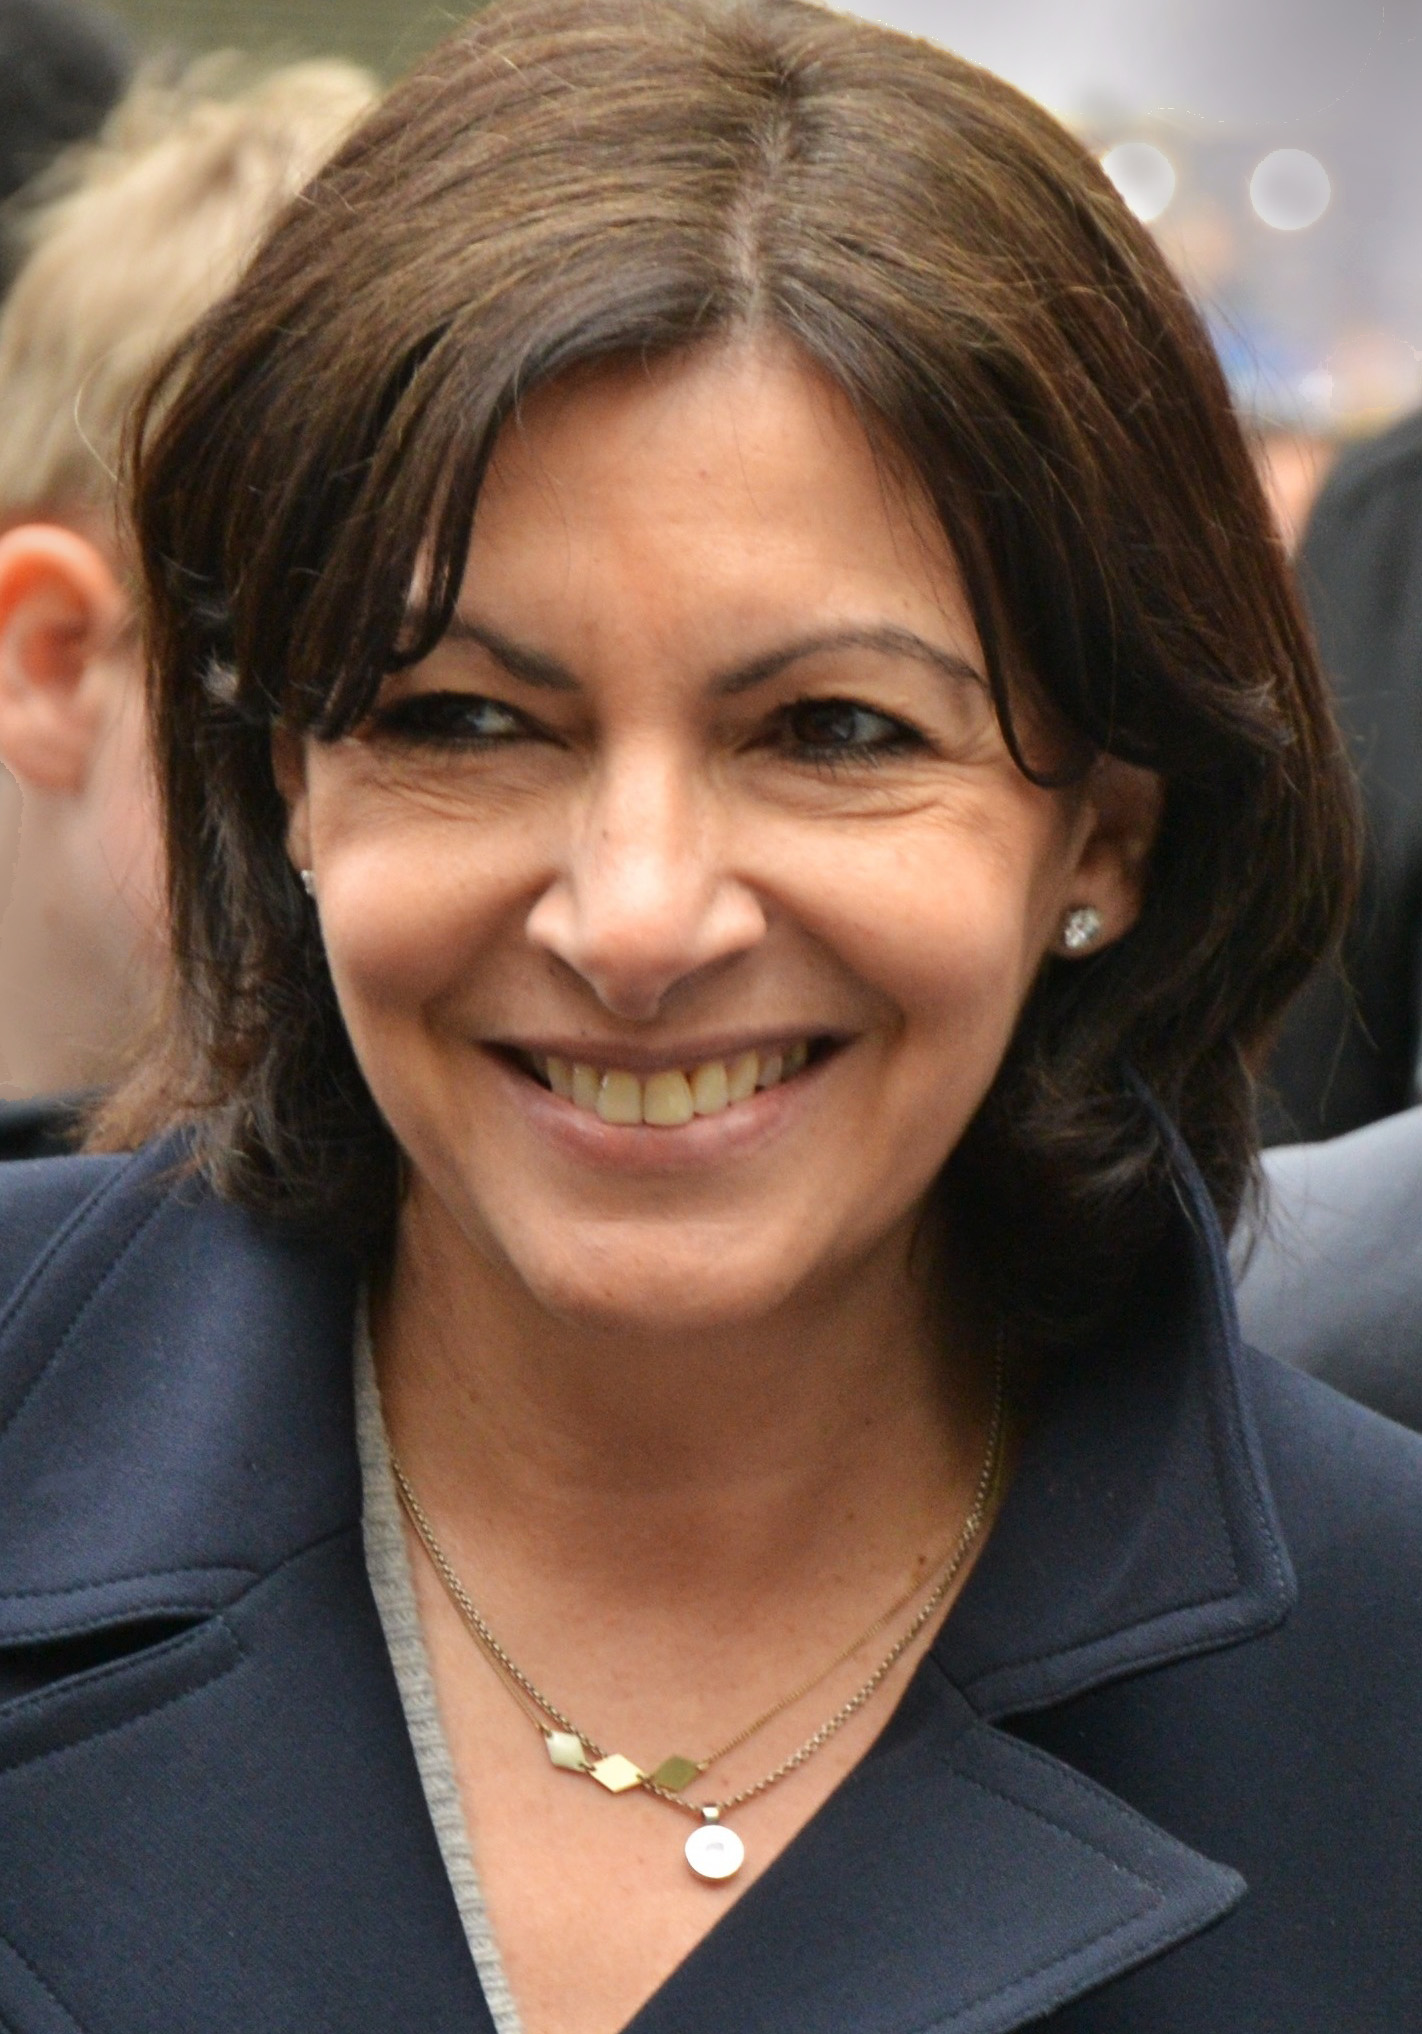 Anne Hidalgo élection presidentielle 2022, candidat